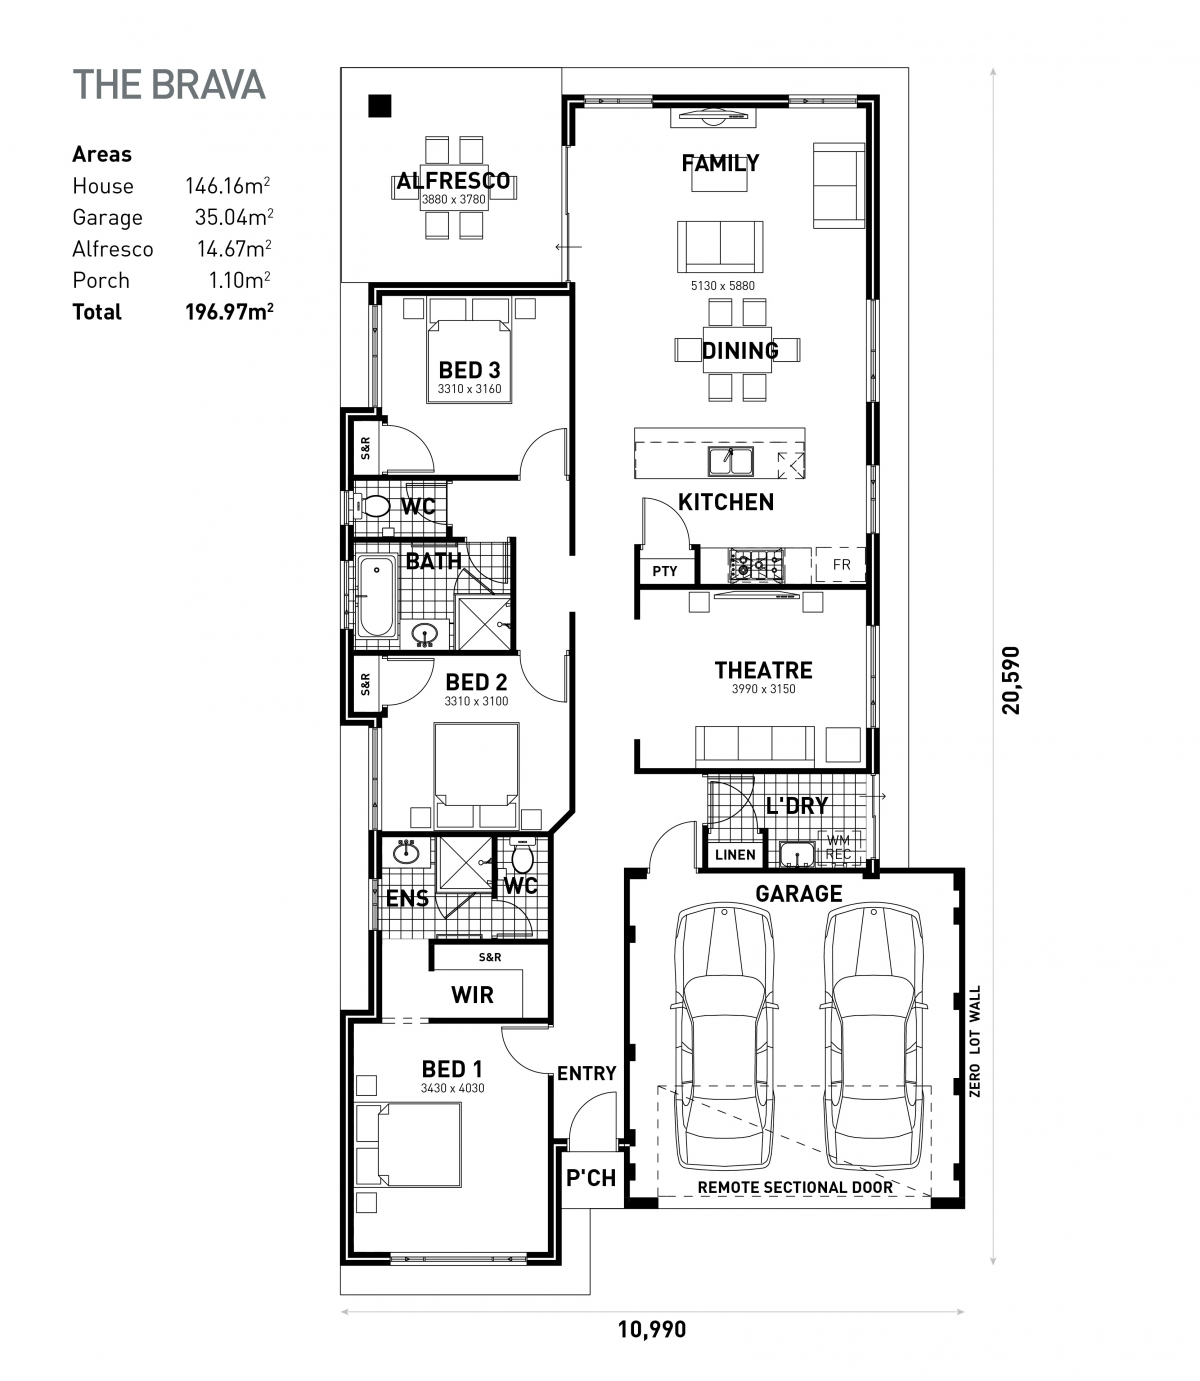 The Brava Floorplan